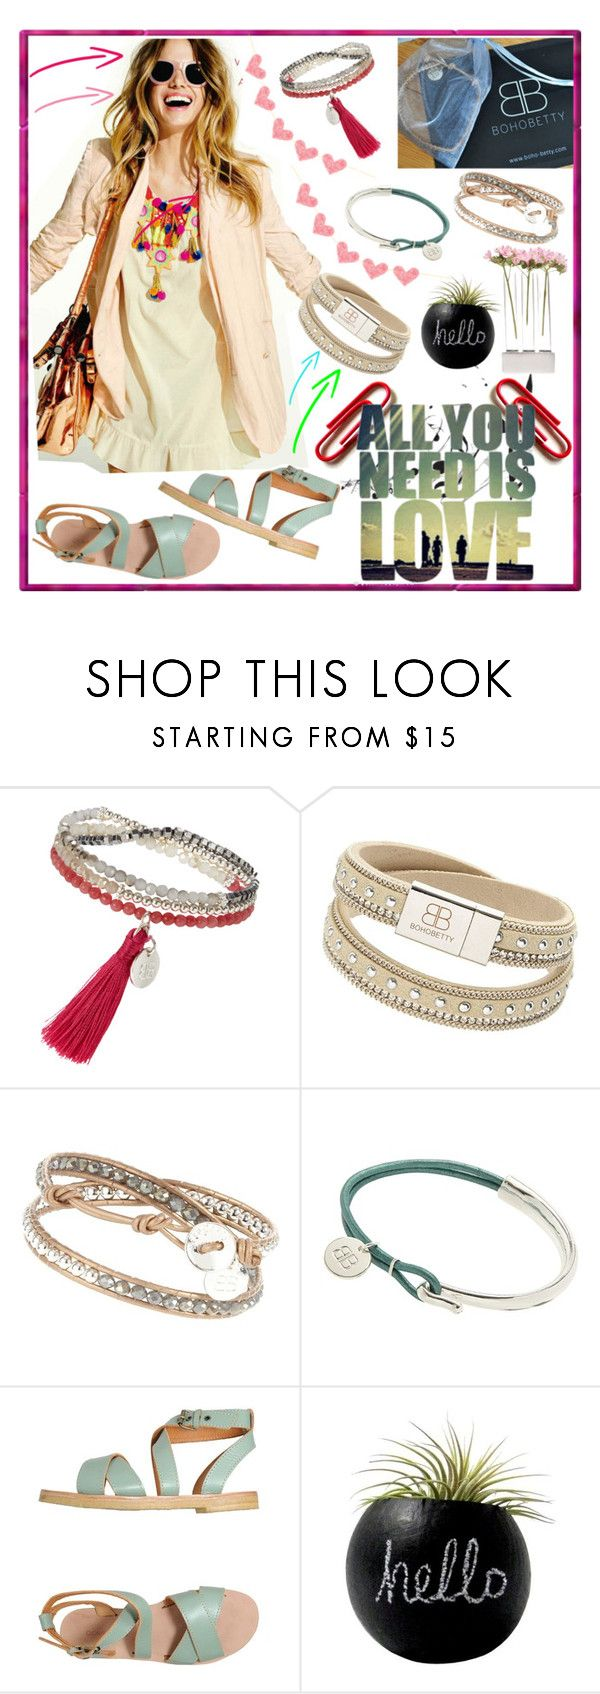 """The Best Of Chic @bohobetty"" by westcoastcharmed ❤ liked on Polyvore featuring beauty, Music Notes, L'Autre Chose and Chive"